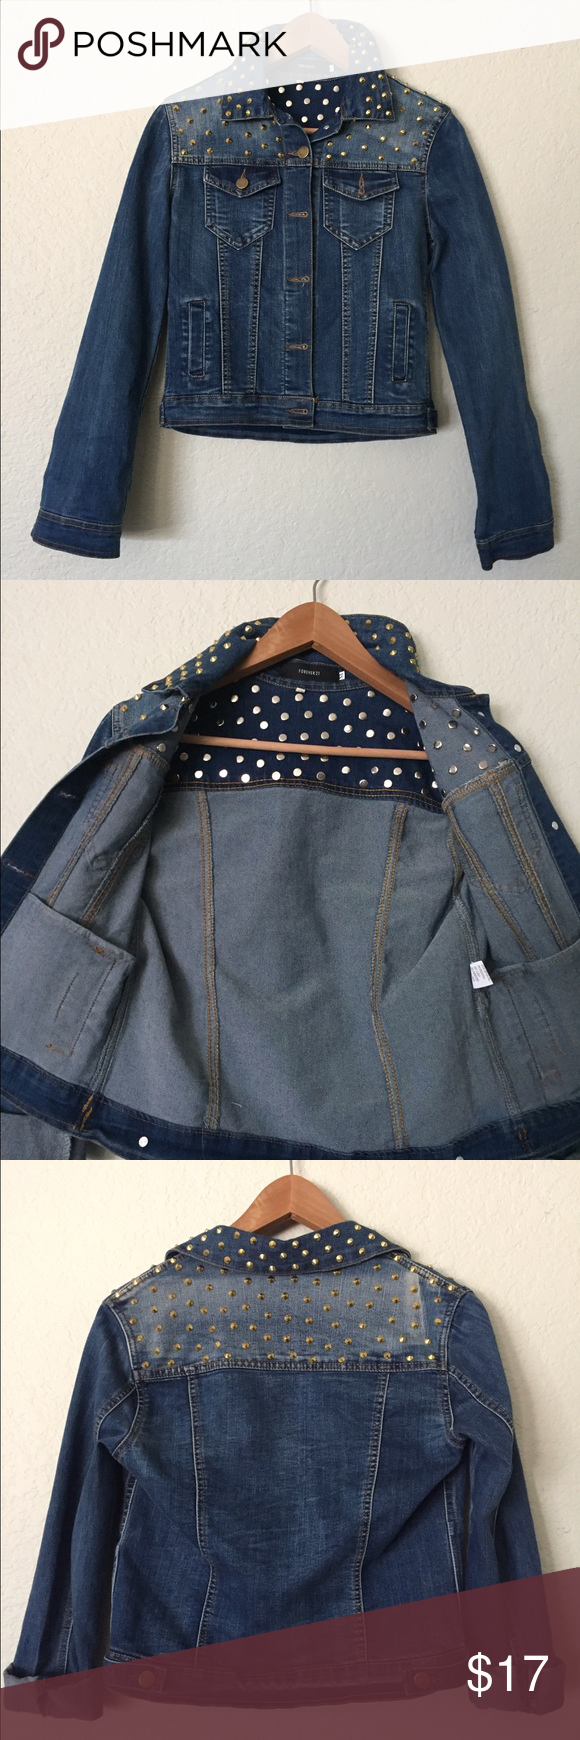 Studded Jean Jacket 100% Polyester • Kind of short, can be considered a 'crop top' jacket • Pockets on inside & out • Never Worn • Great Condition • Non-Smoking home • Forever 21 Jackets & Coats Jean Jackets